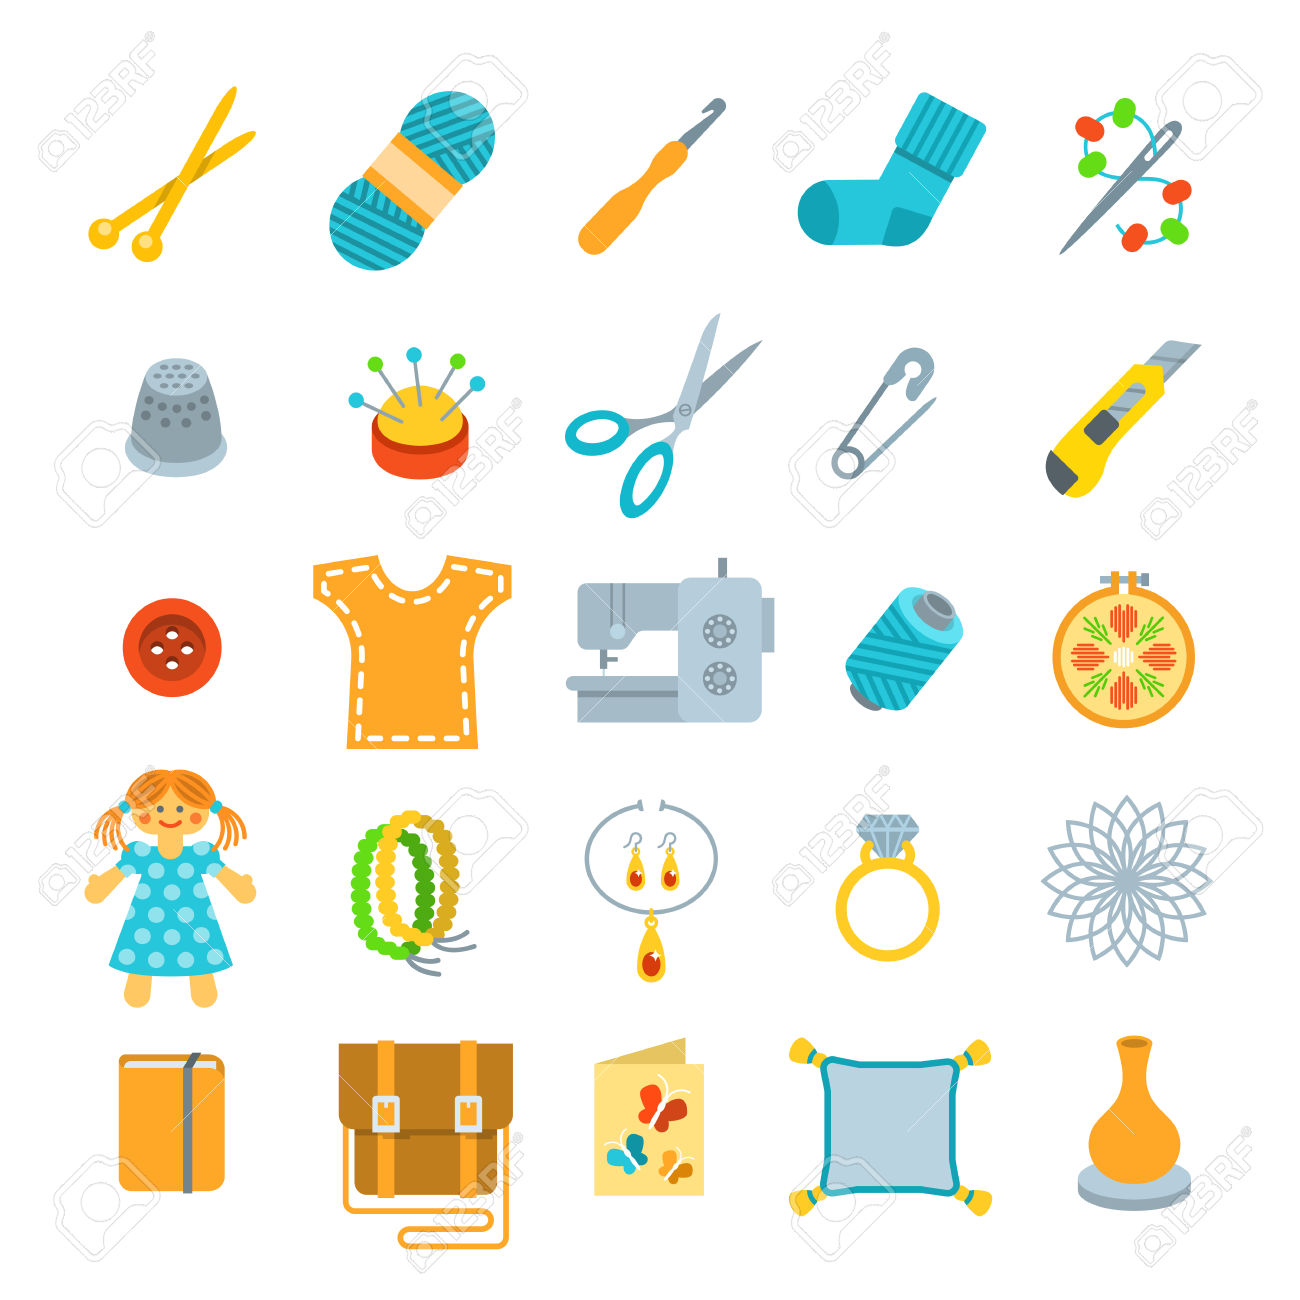 13,231 Handicrafts Stock Vector Illustration And Royalty Free.